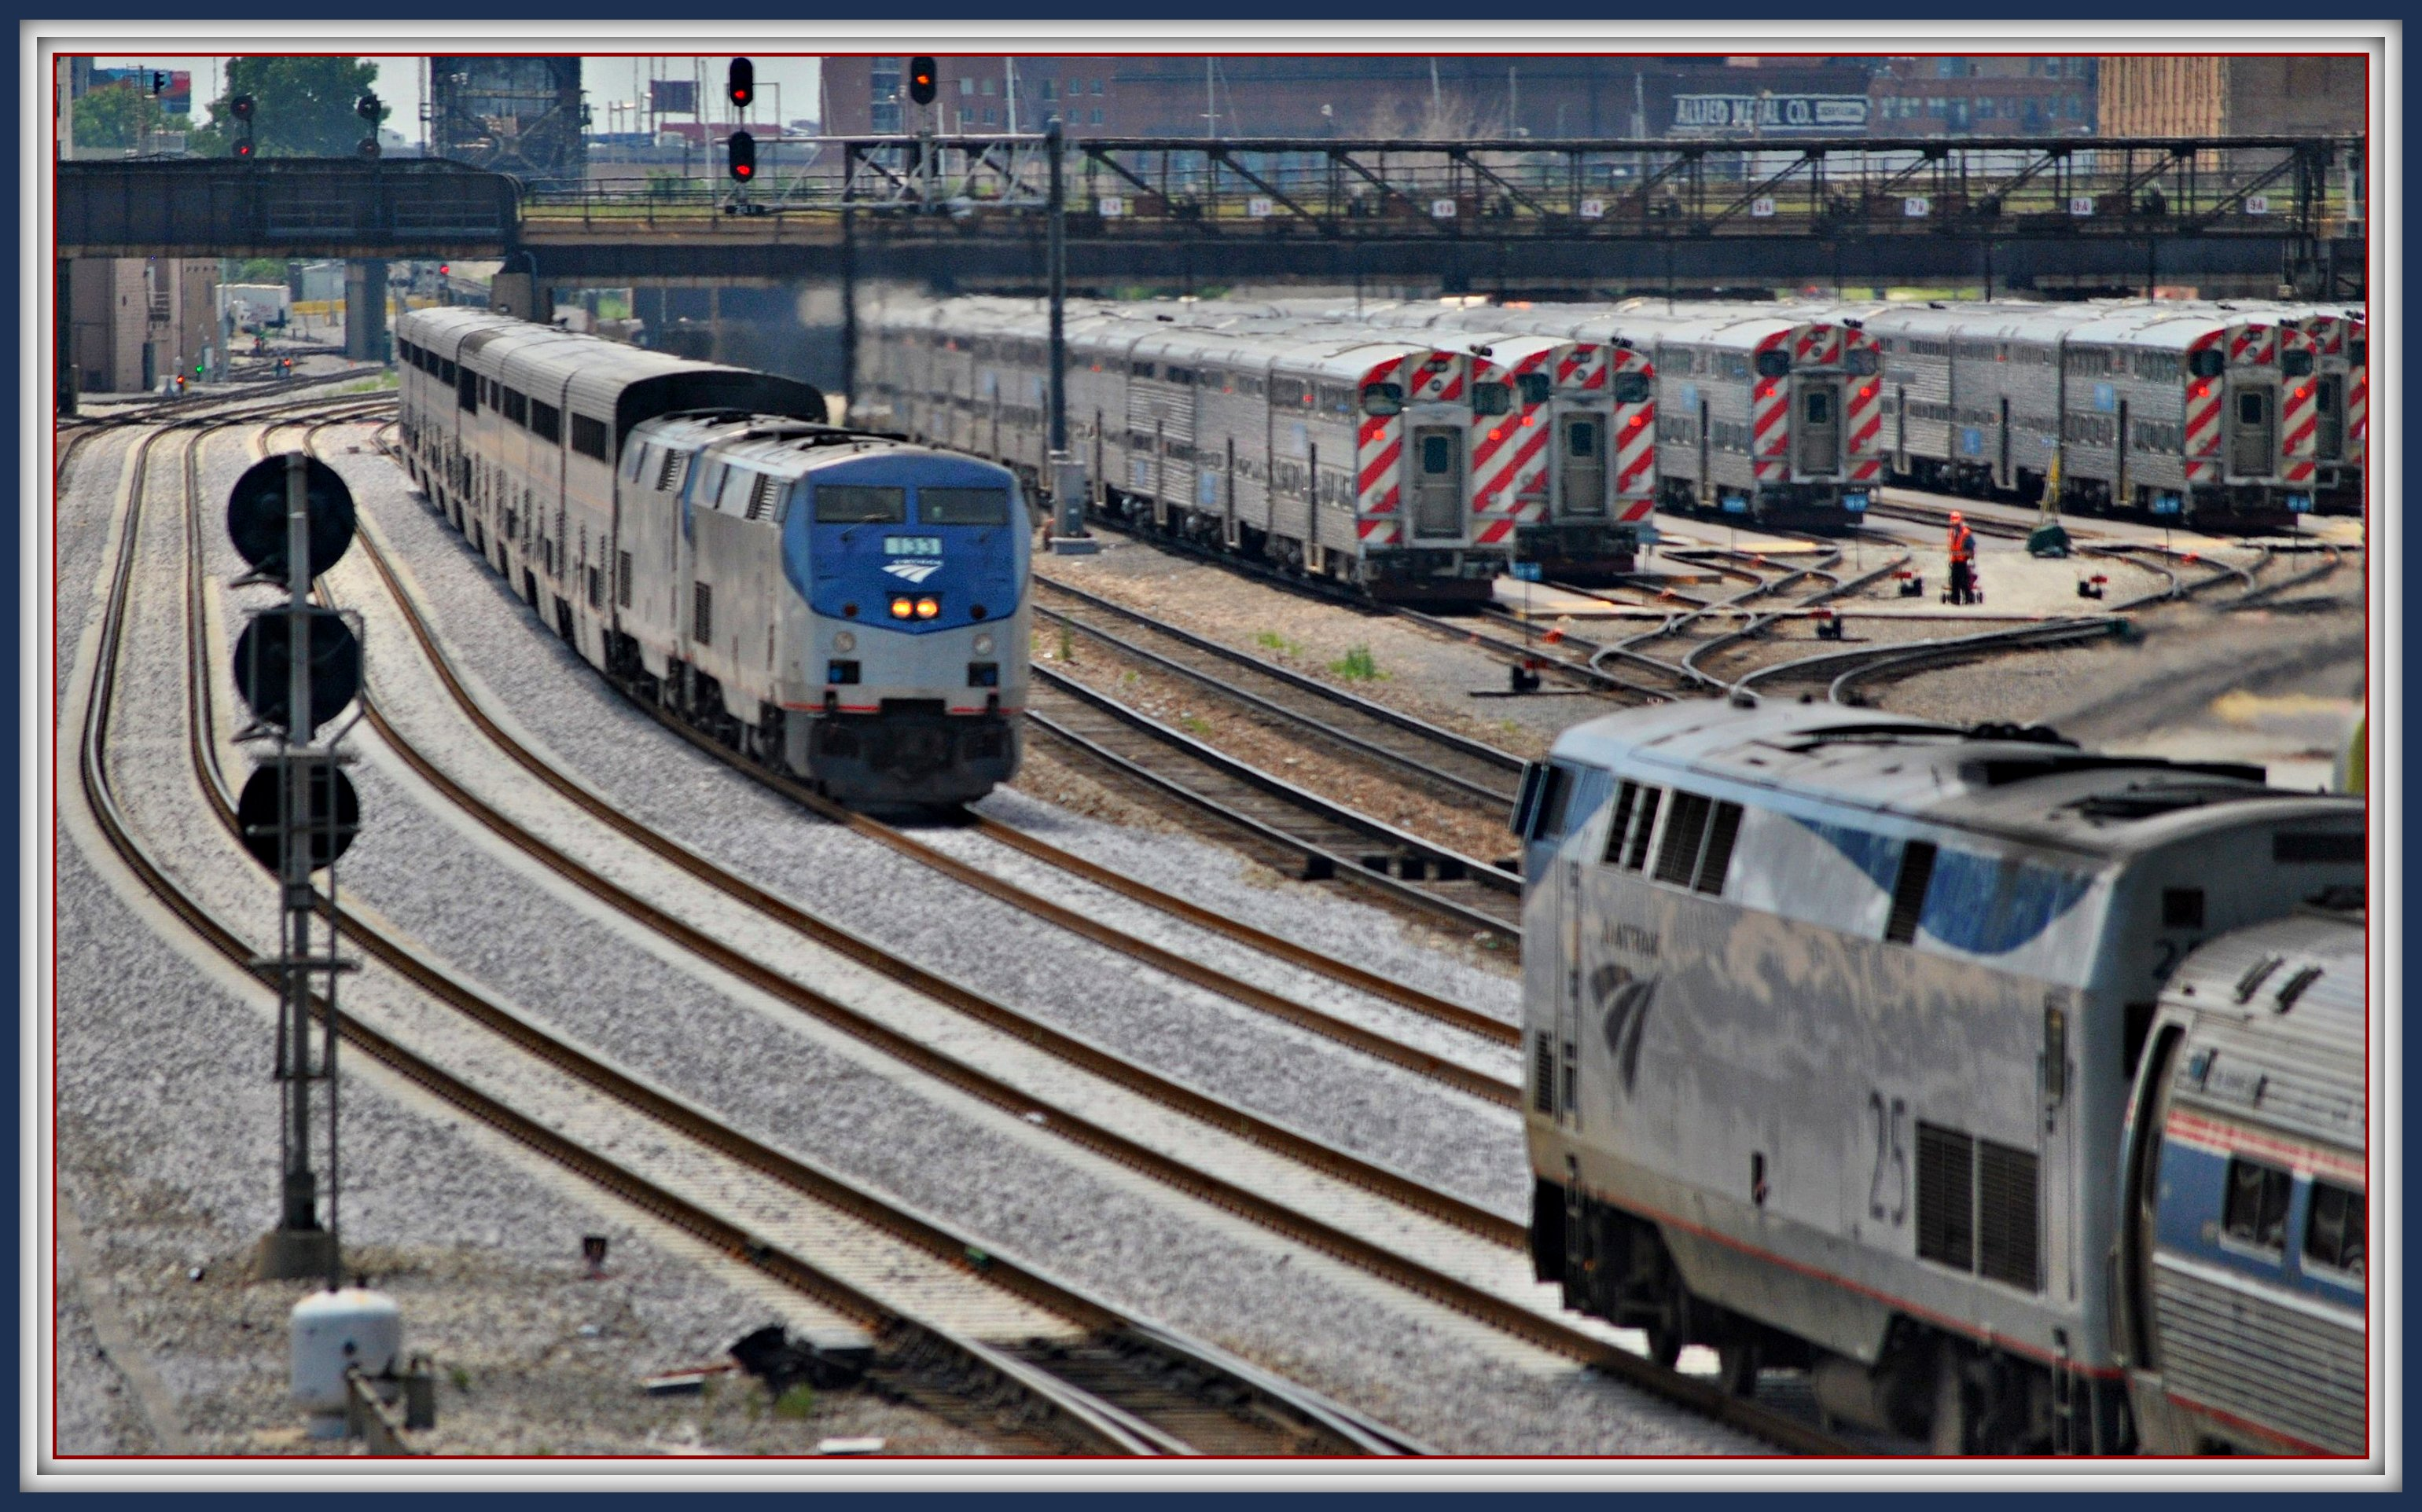 Amtrak comings and goings